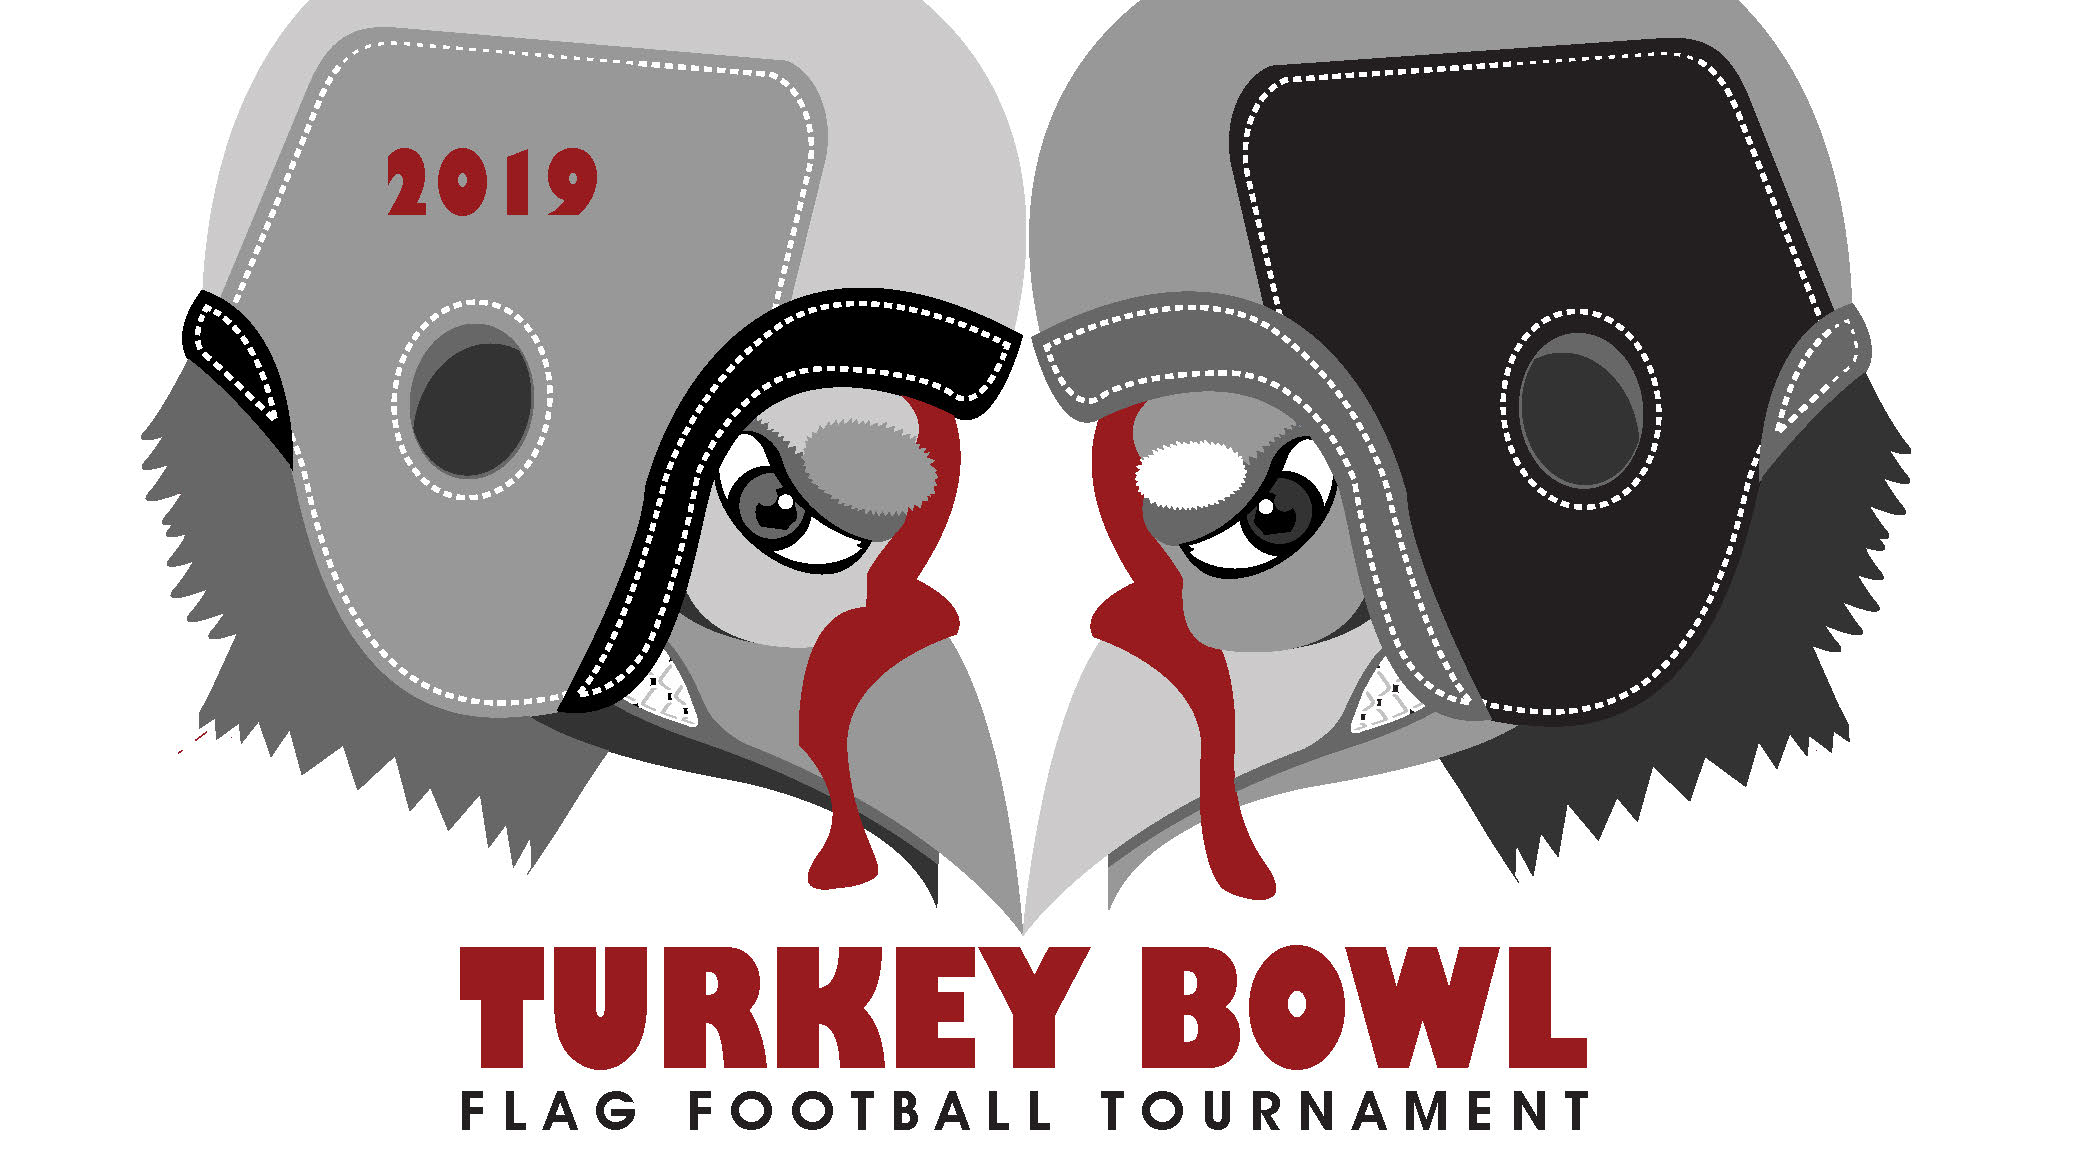 Turkey Bowl Flag Football Tournament